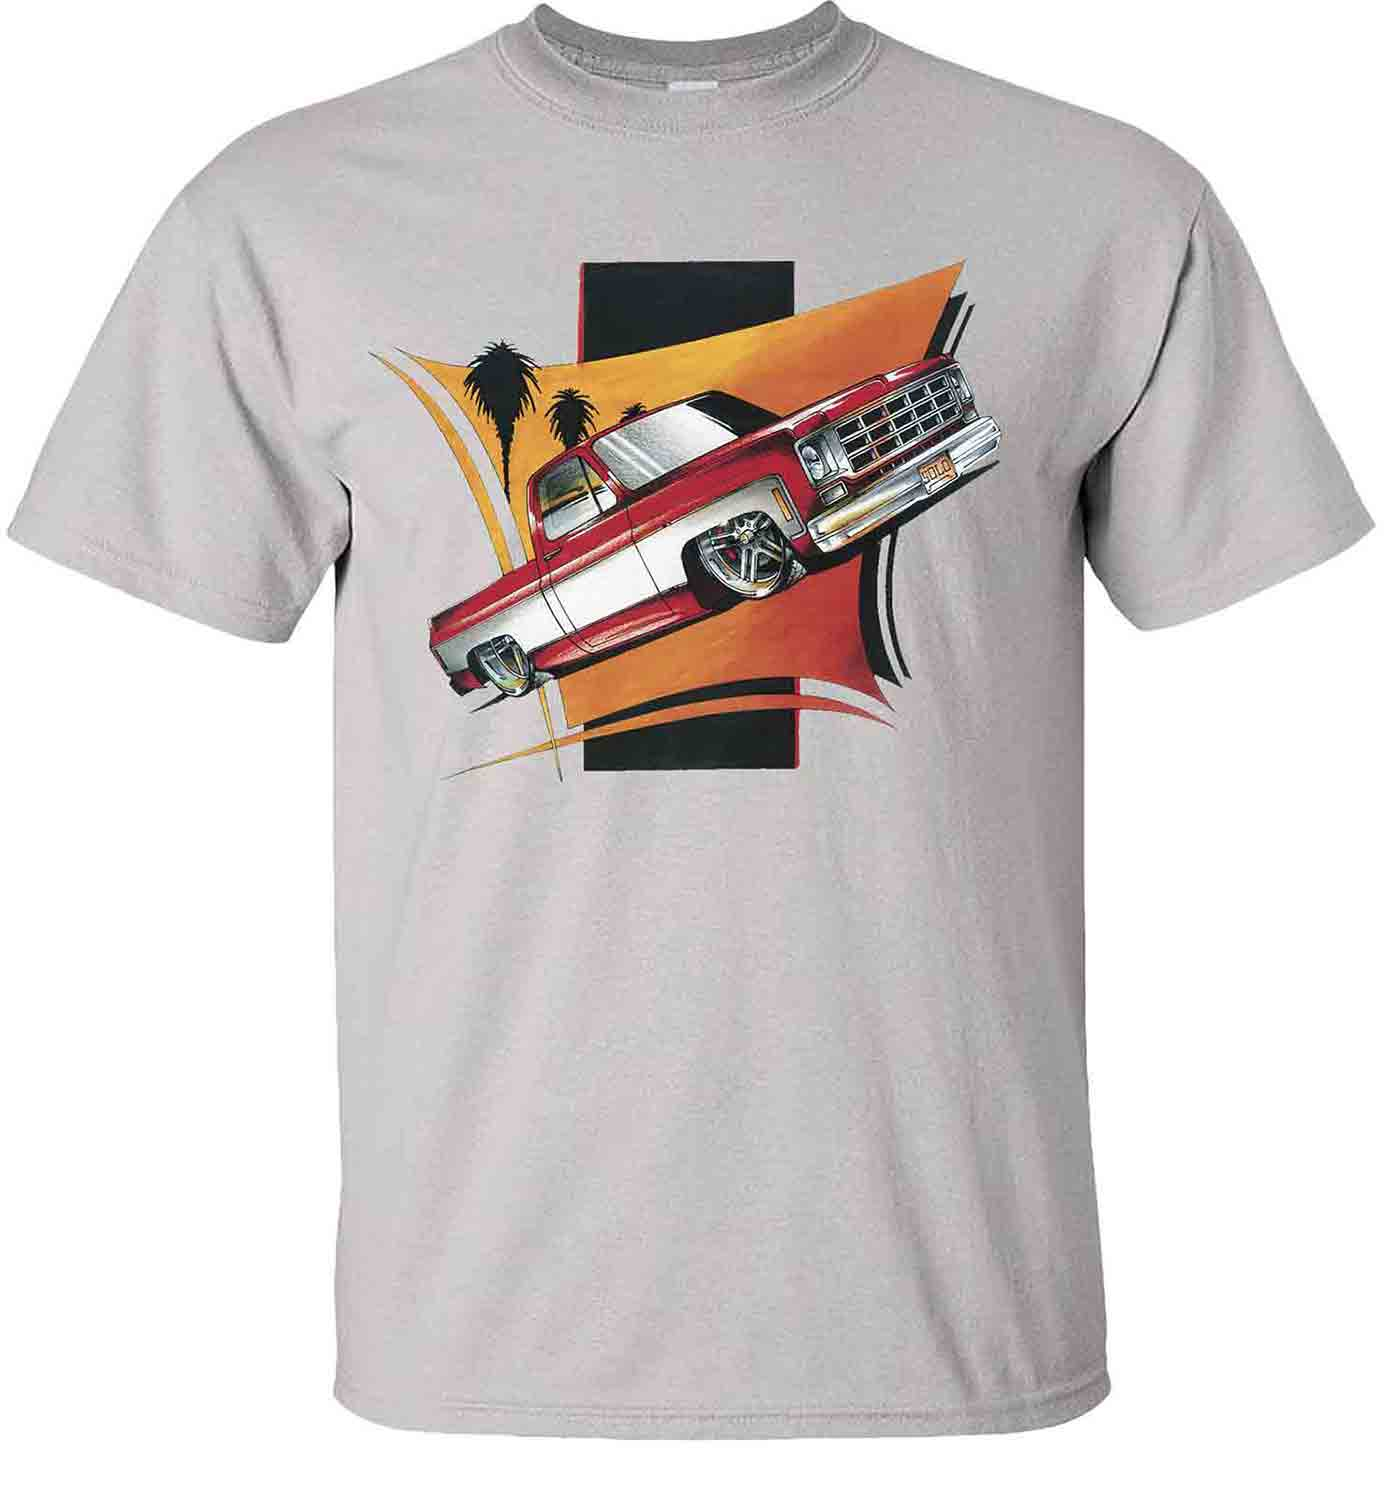 red-chevy-pickup-lowered-silverado-cheyenne-truck-t-shirt-ice-grey.jpg